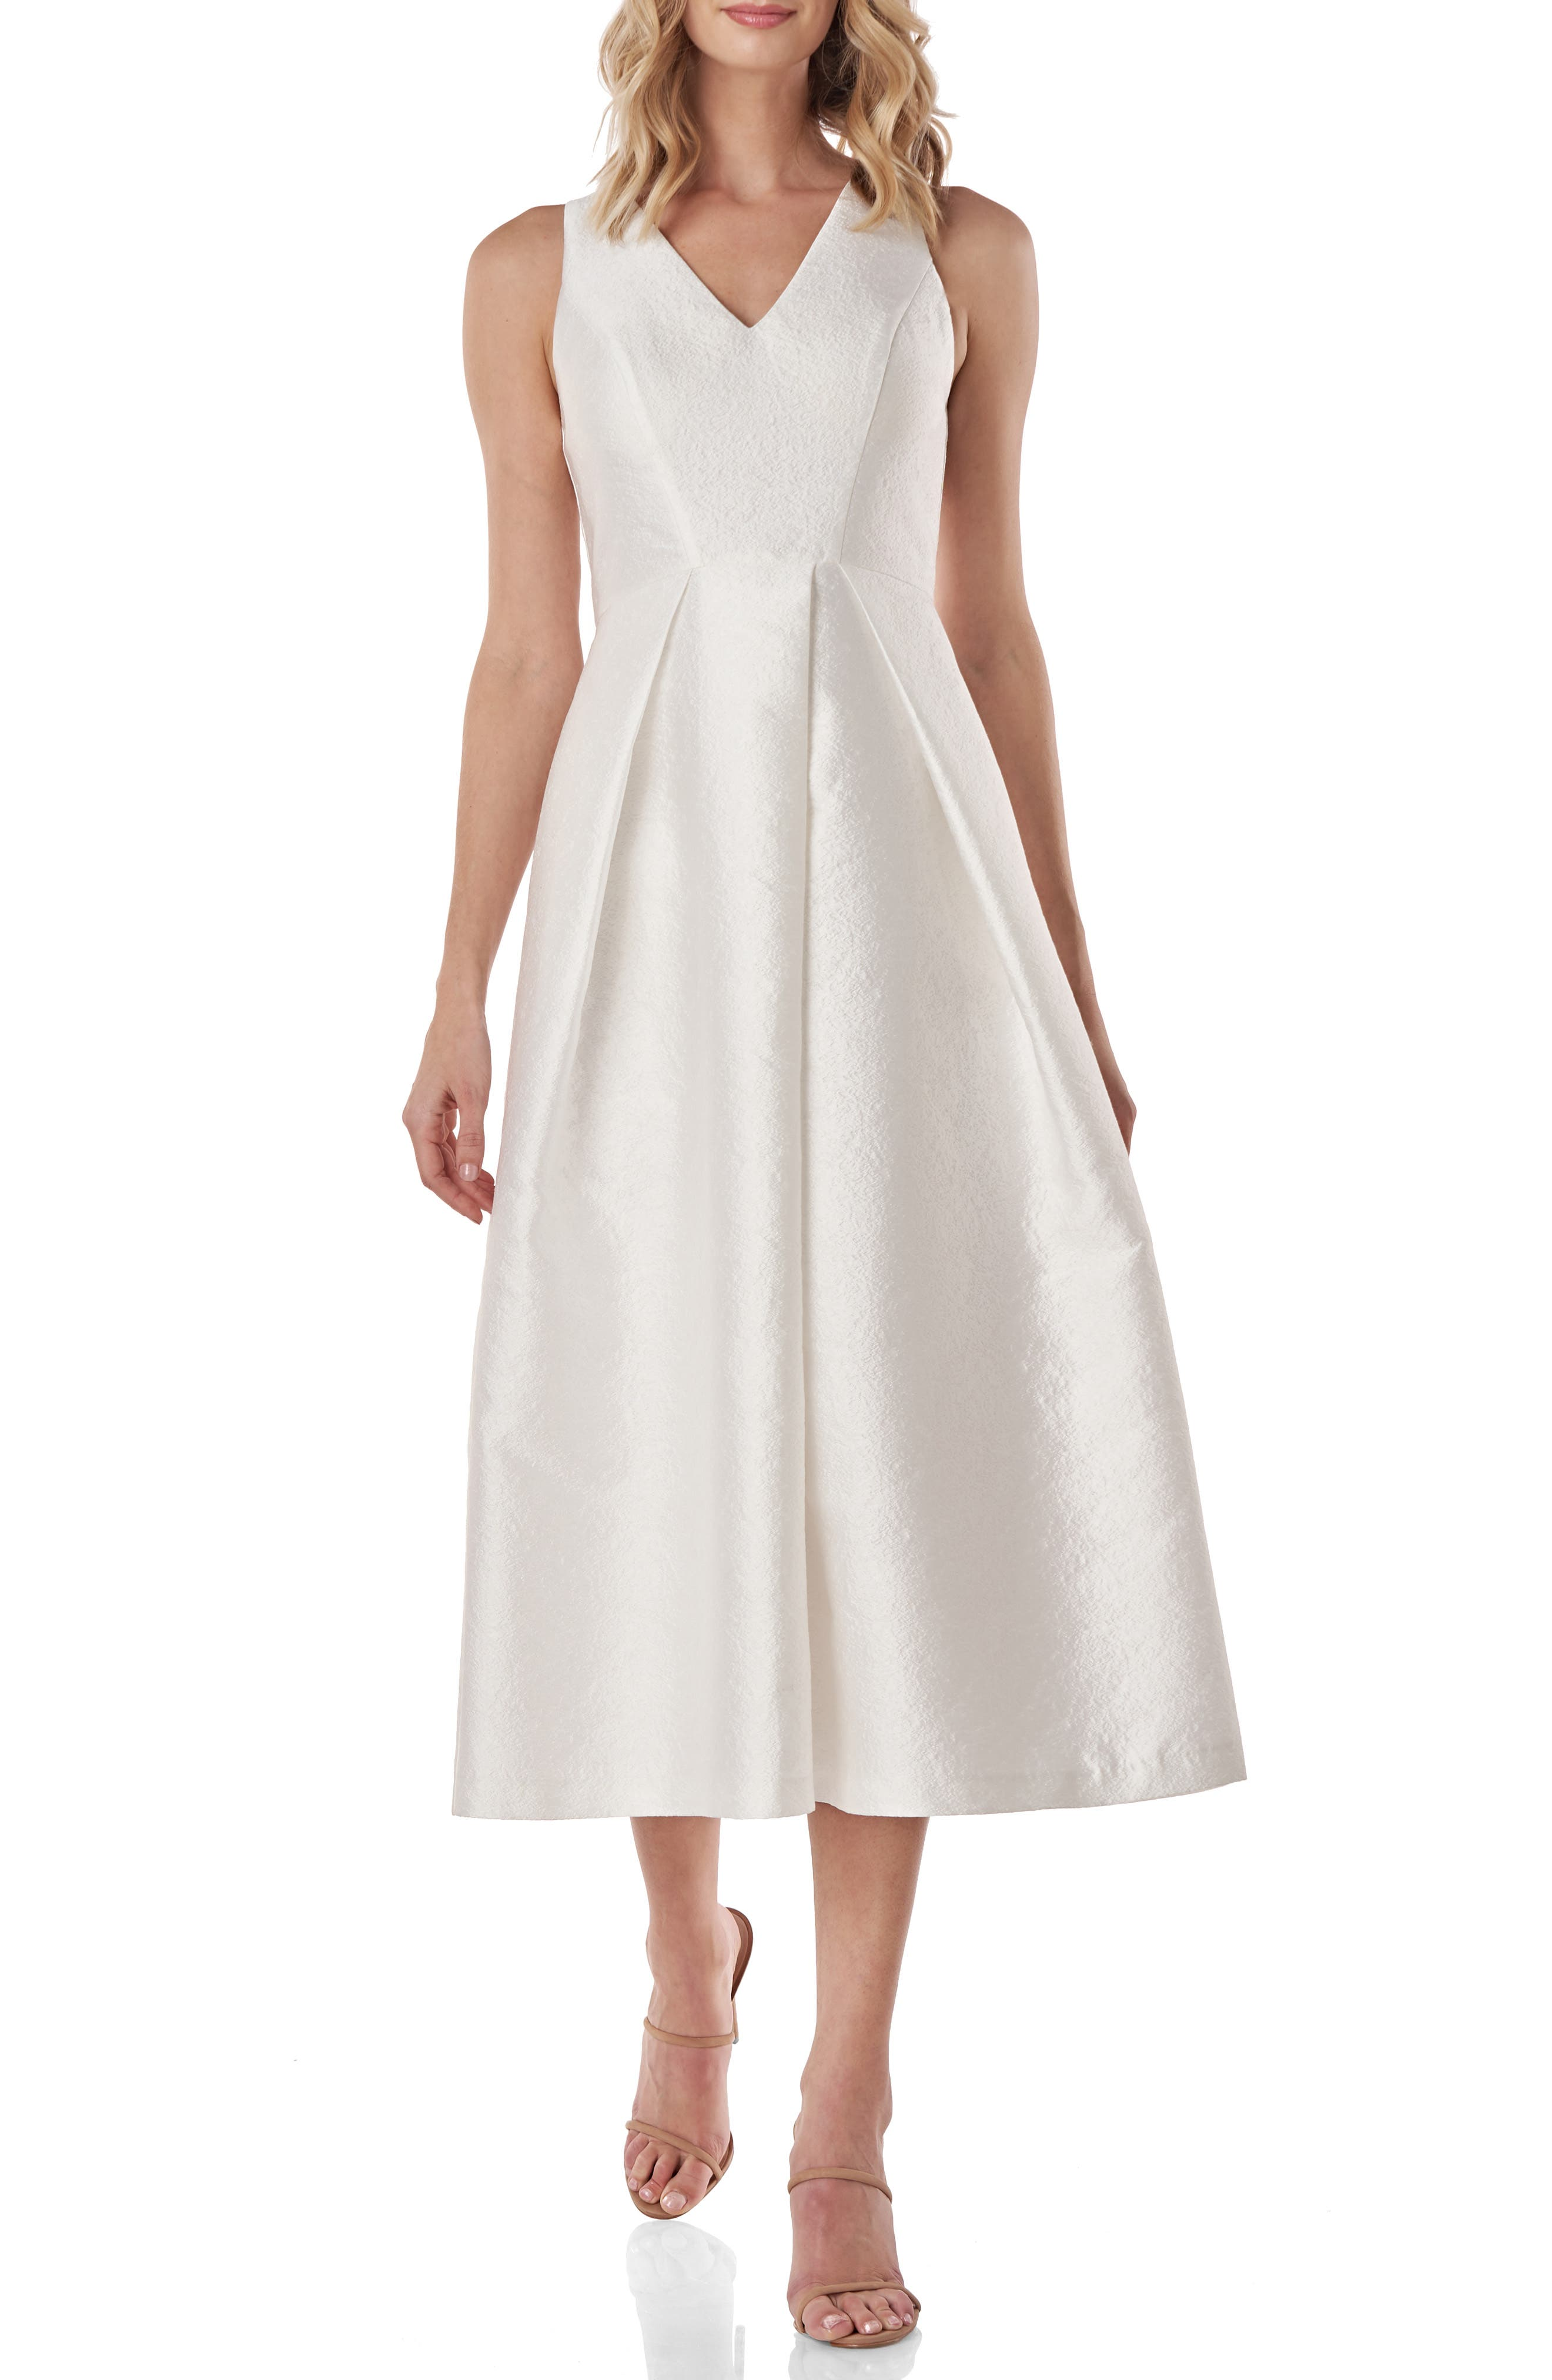 Maxime Pleat Flare Cocktail Dress